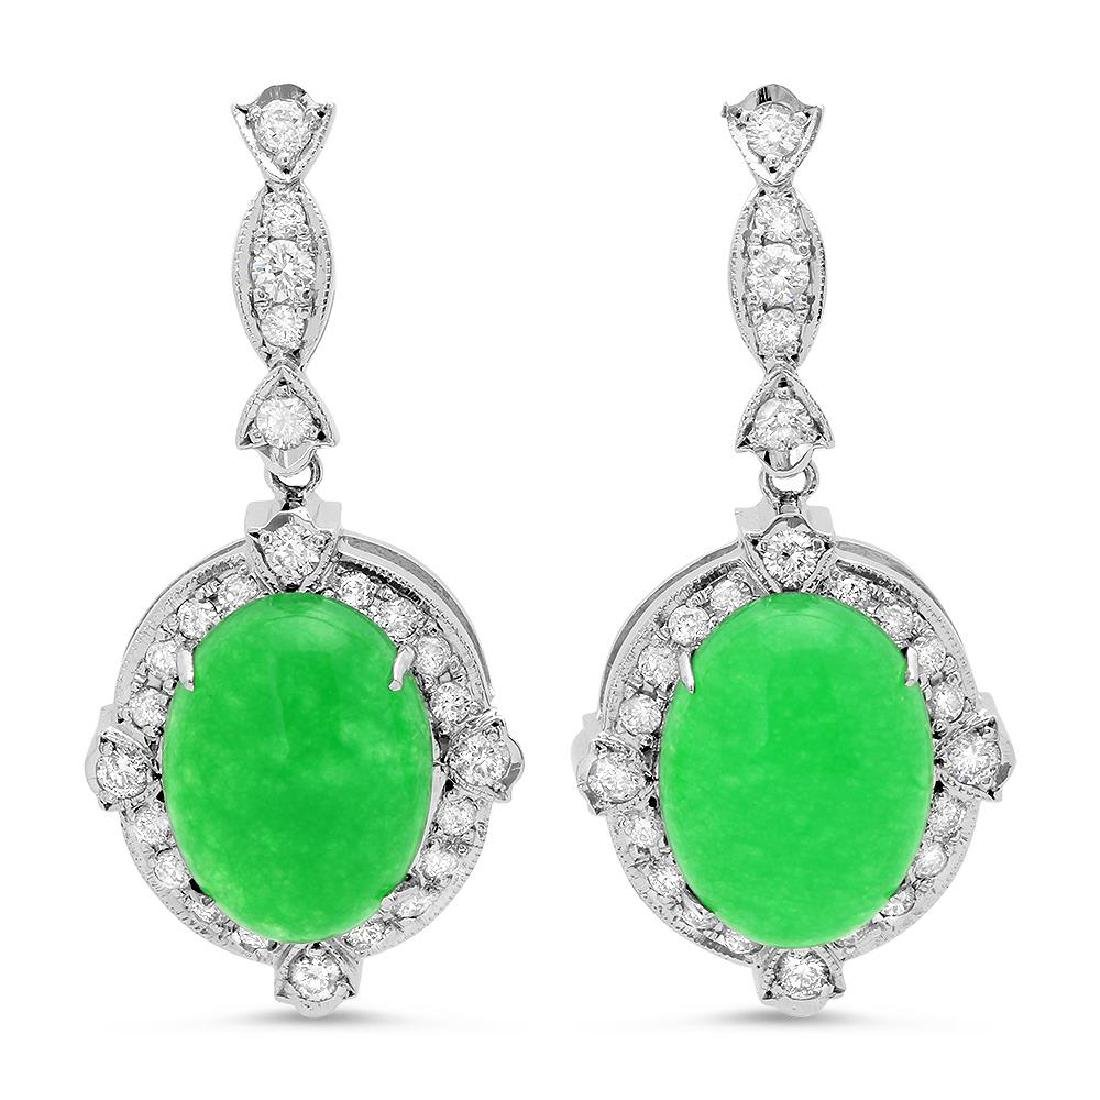 14K Gold 17.86ct Jadeite 1.92cts Diamond Earrings - 2